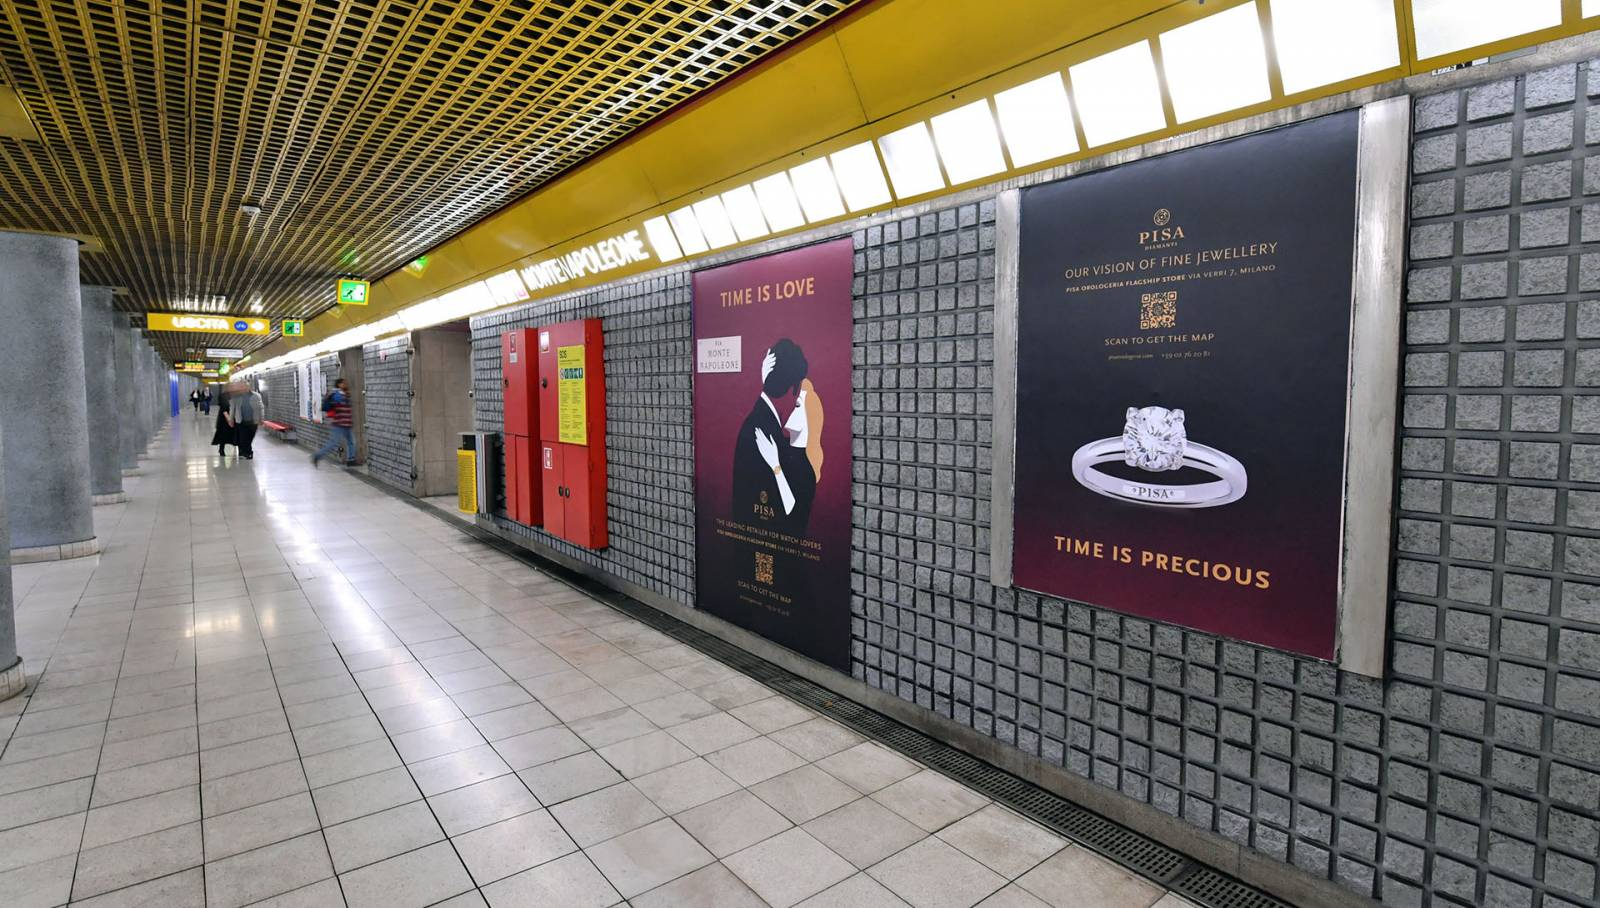 IGPDecaux Out of Home advertising in Milan for Pisa Orologeria